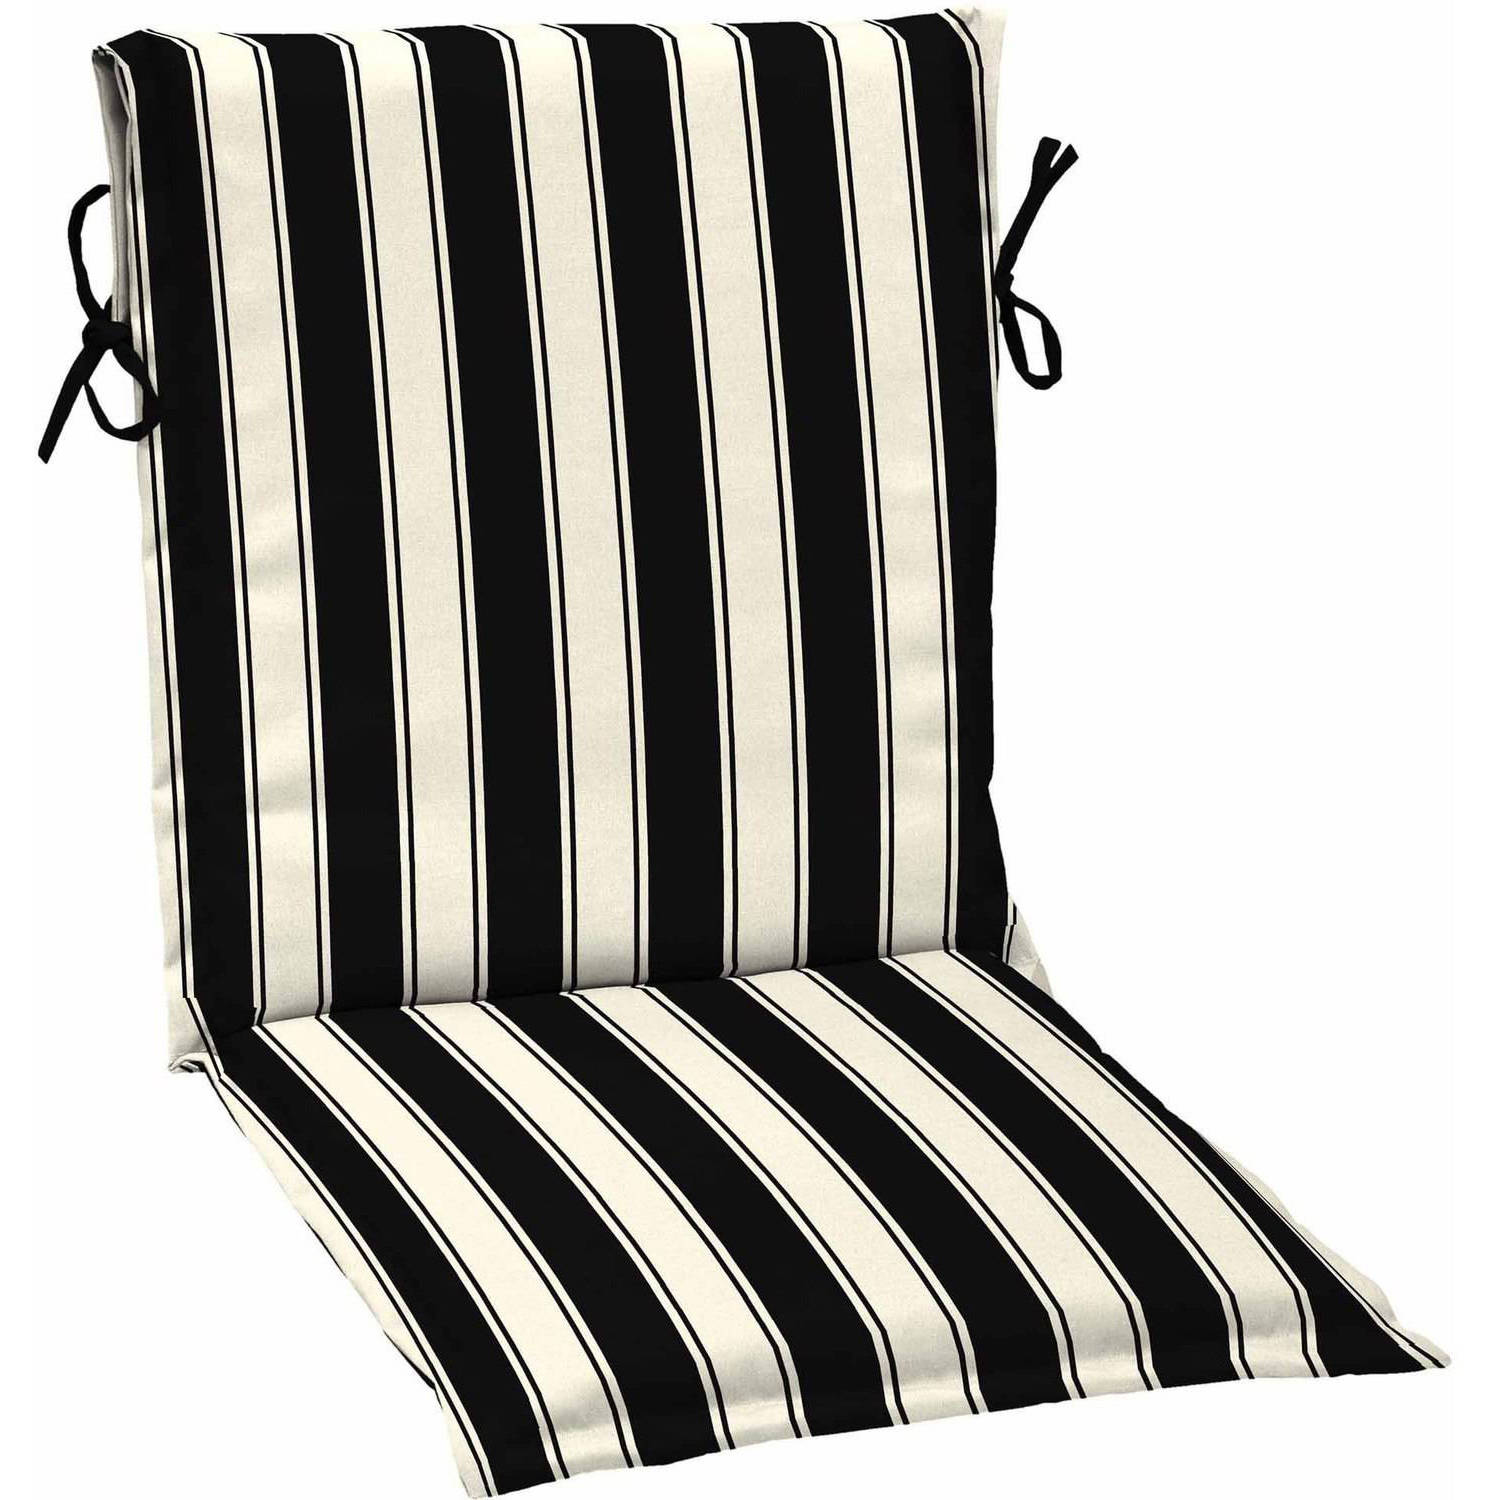 Charmant Better Homes And Gardens Outdoor Patio Sling Chair Cushion, Black White  Stripe